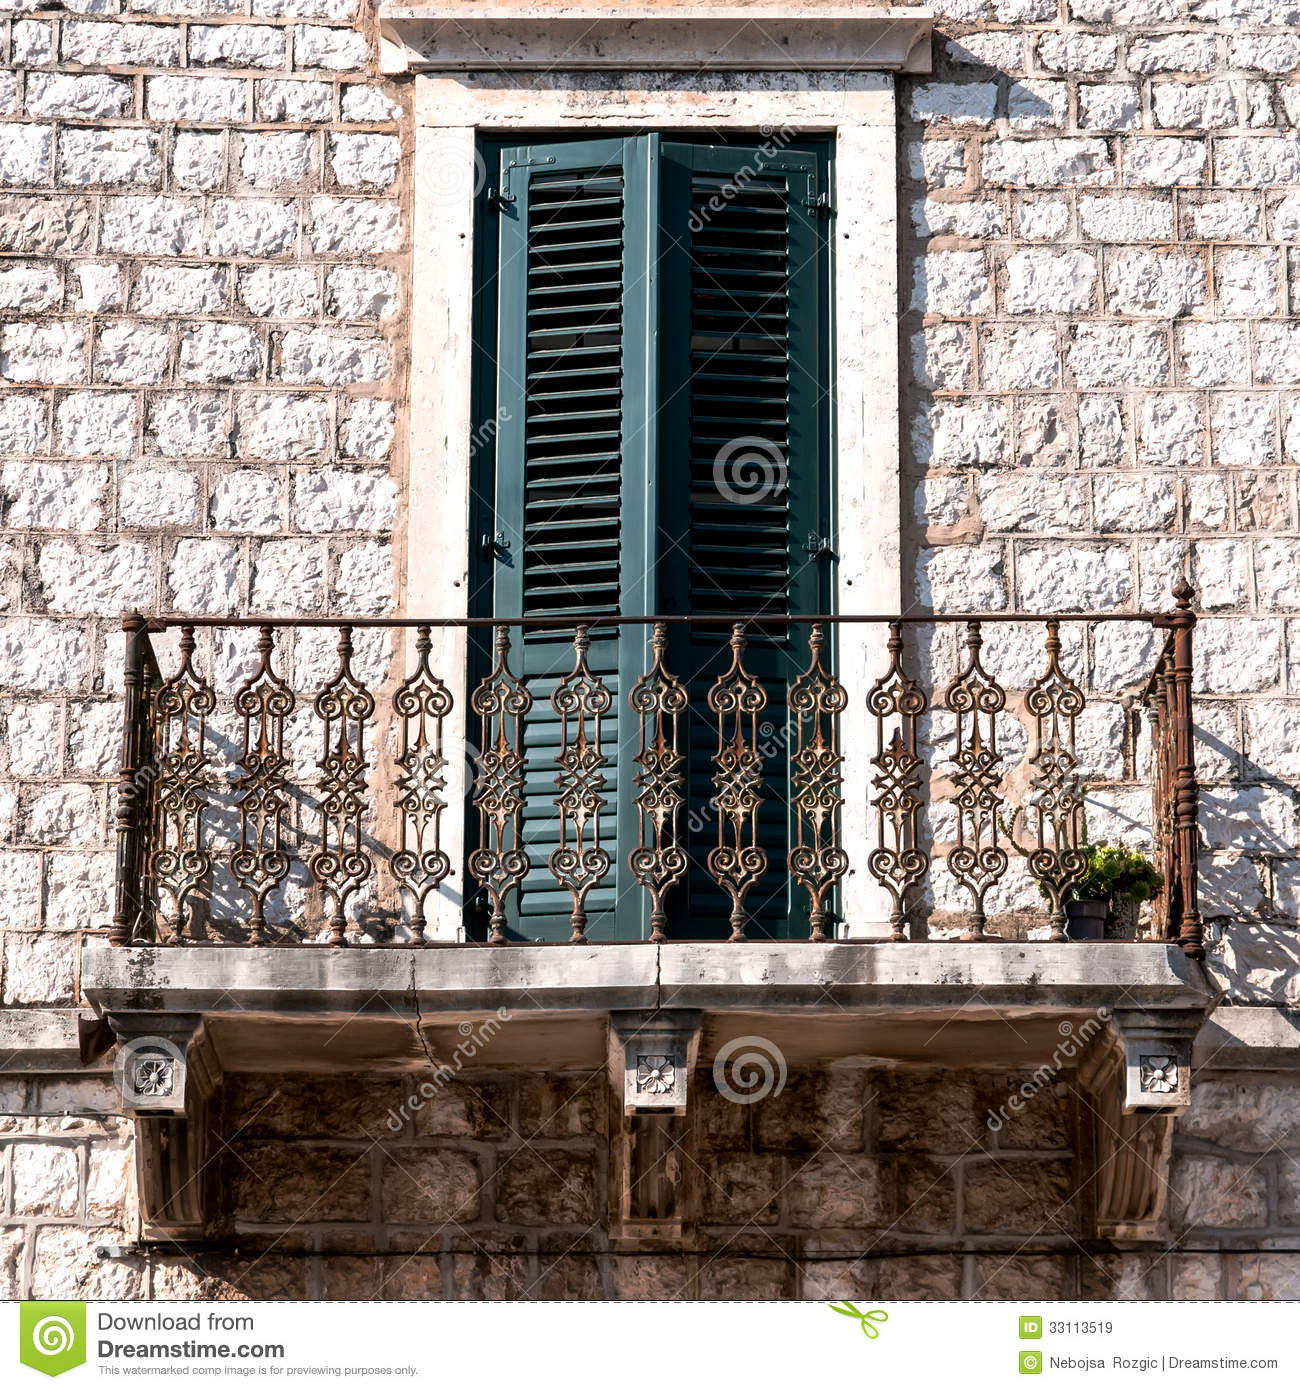 Balcony In Marble Wall : Old wall with balcony and window stock image of